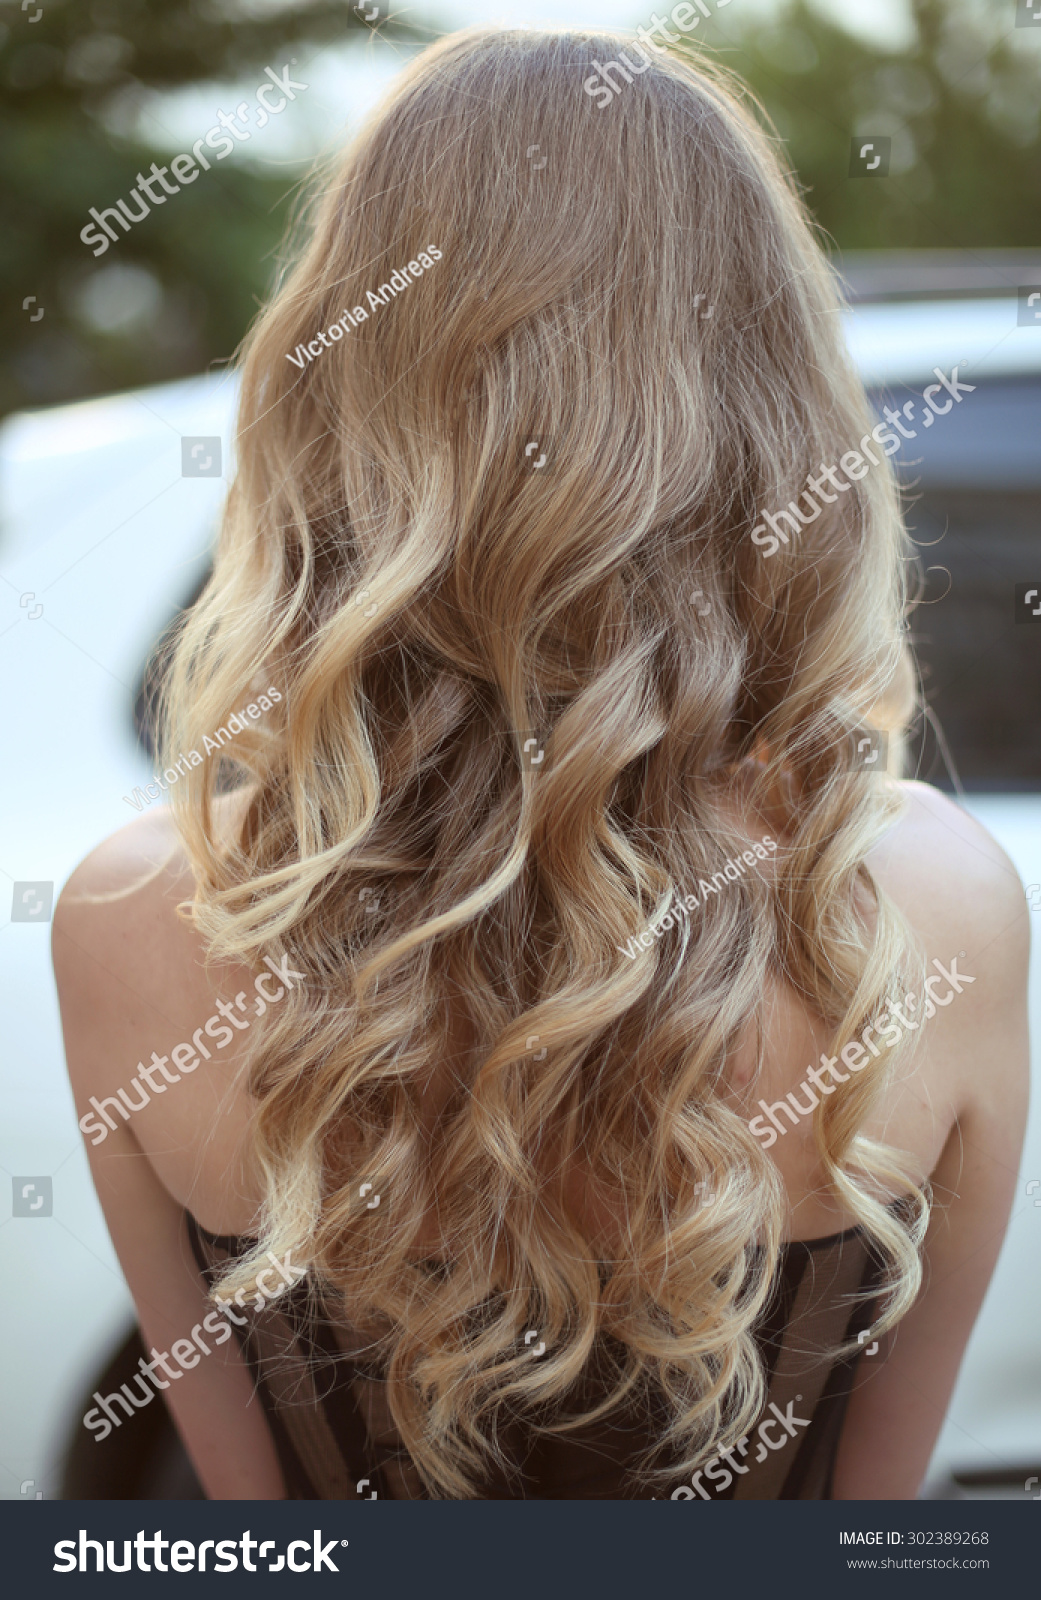 healthy hair curly long hairstyle back view of blond